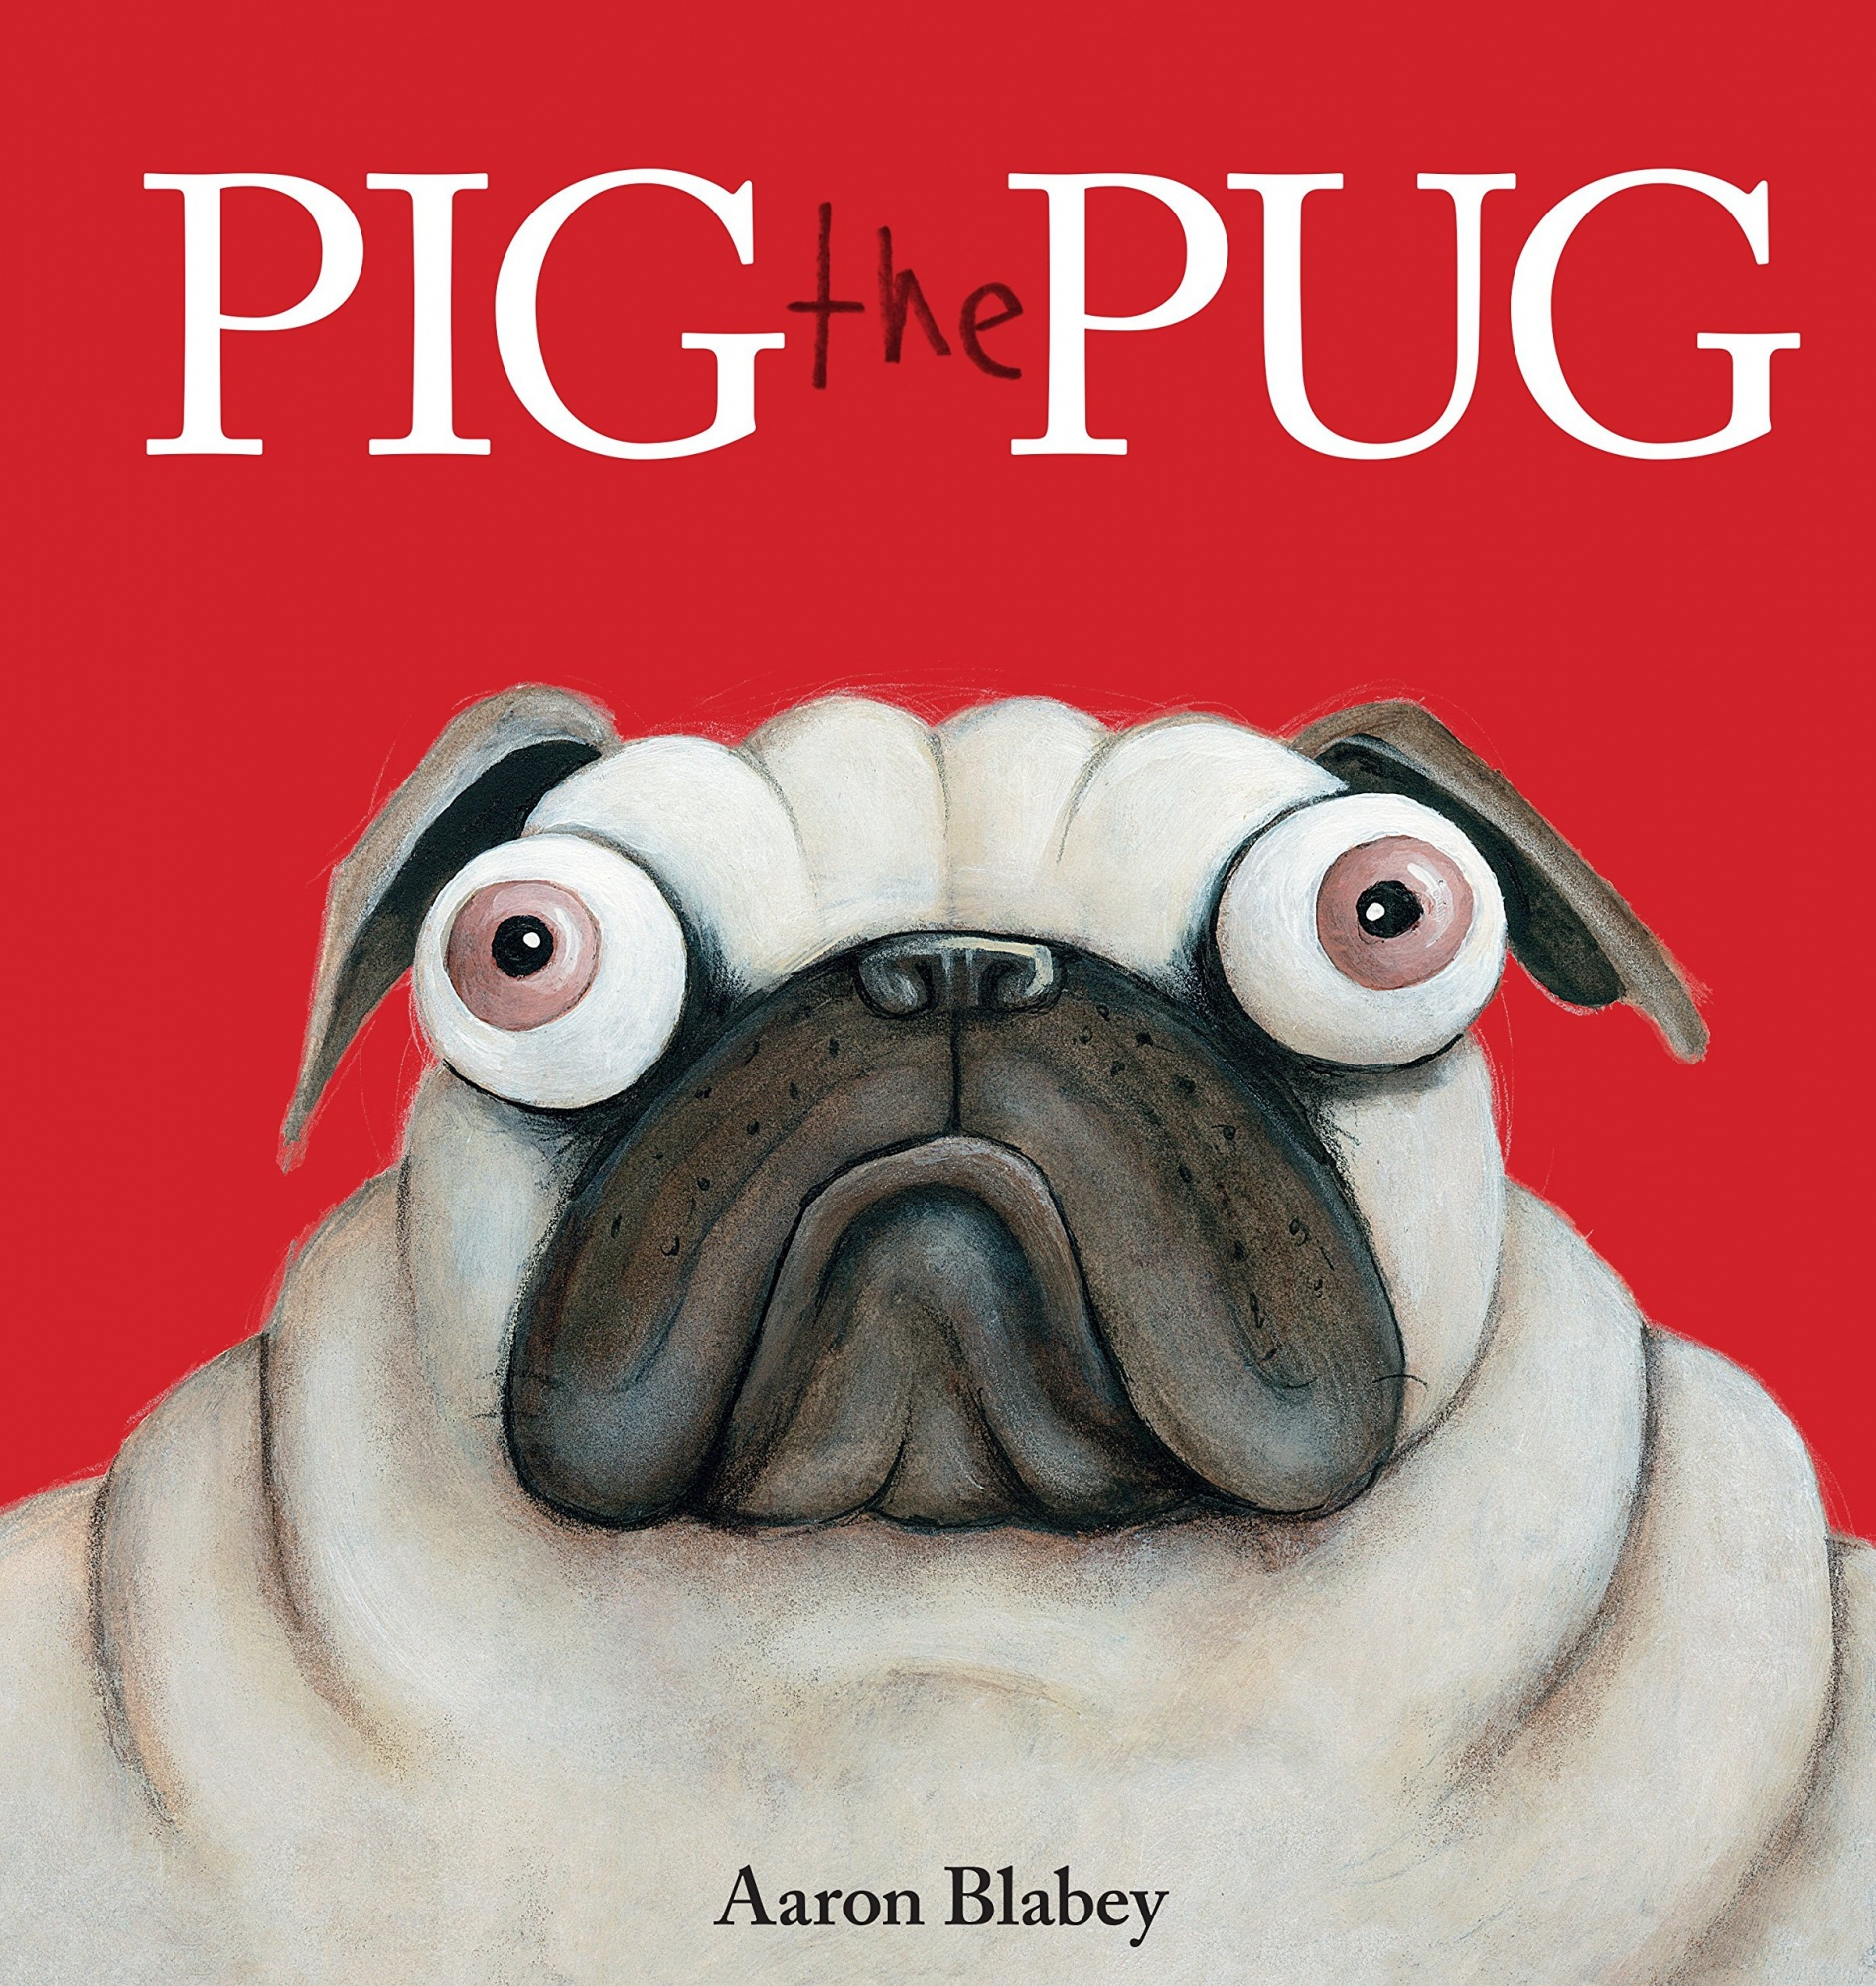 Pig the Pug by Aaron Blabey, ISBN: 9781338112450